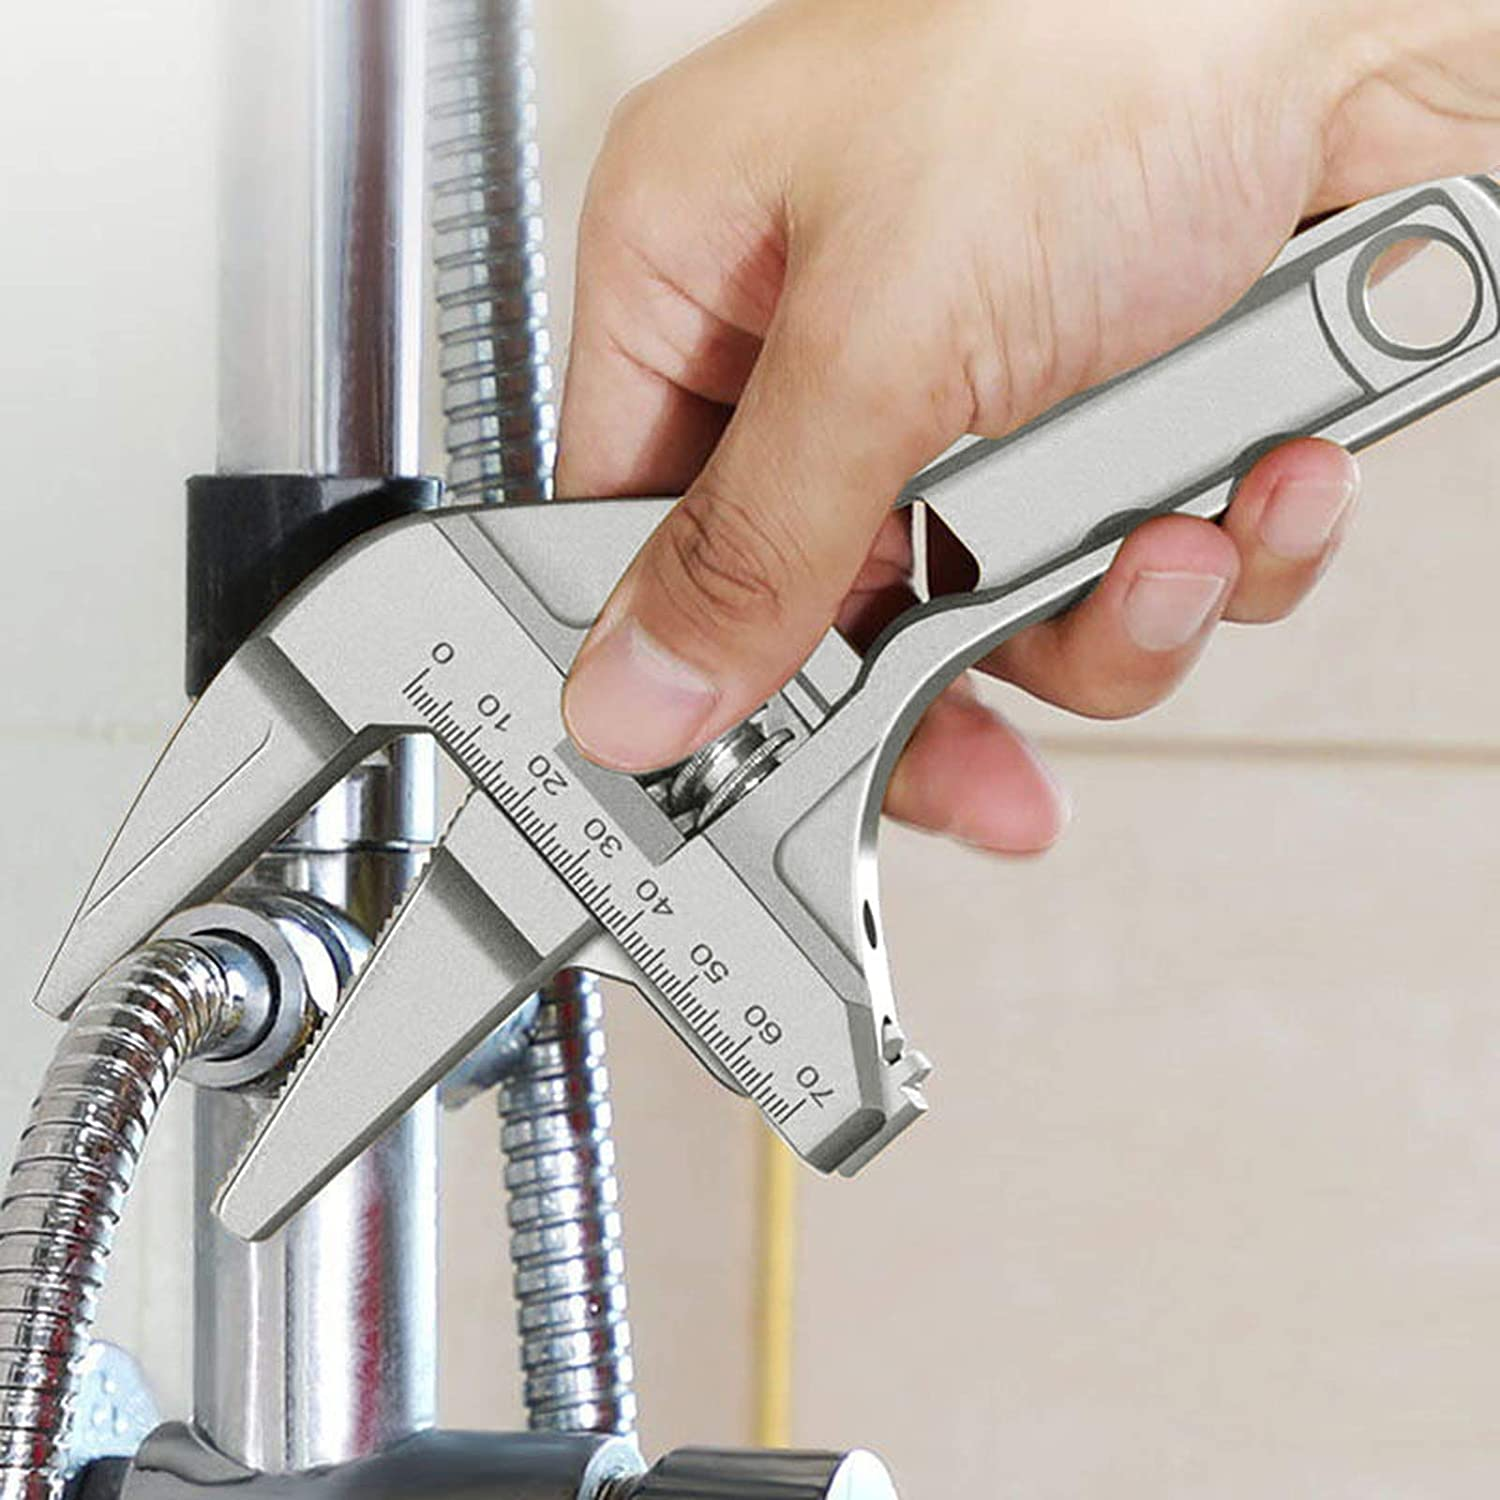 Lixuu Adjustable Wrench,Multi-Function Plumber Wrench Repair Tool for Bathroom Kitchen Sink Washbasin Tube Nut